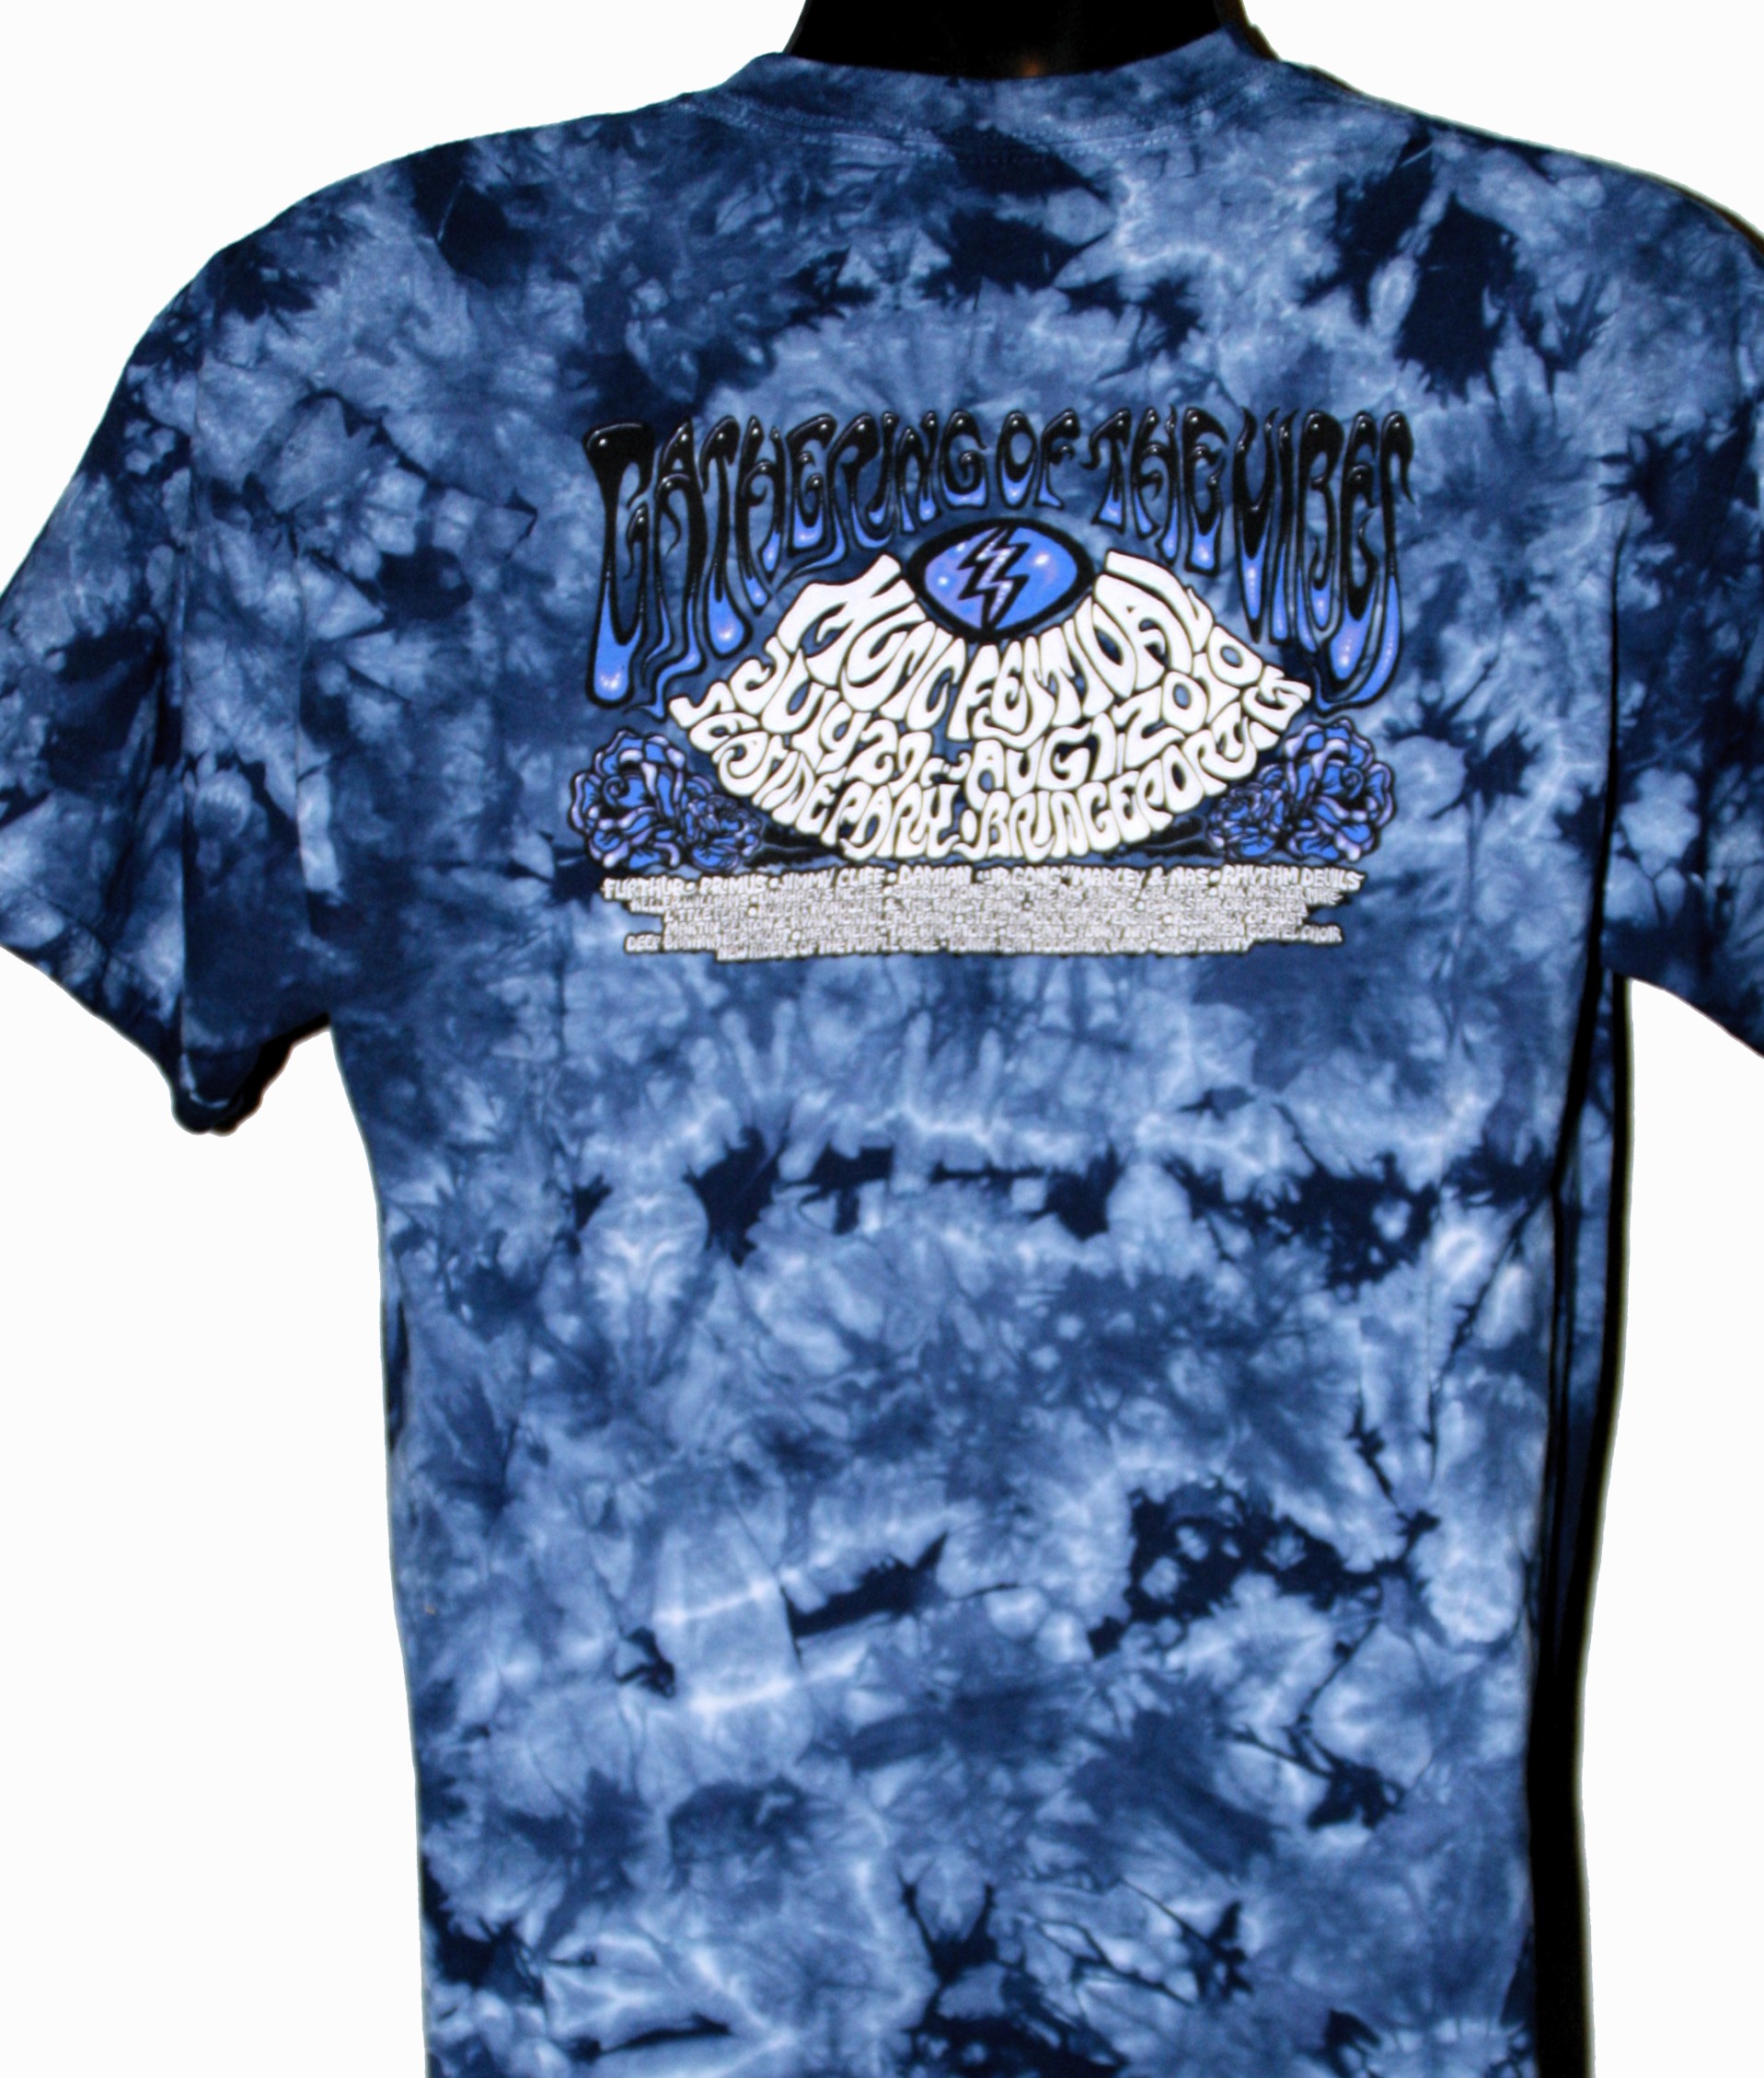 2010 wood turtle dark blue tie dye t shirt gathering of for Black and blue tie dye t shirts